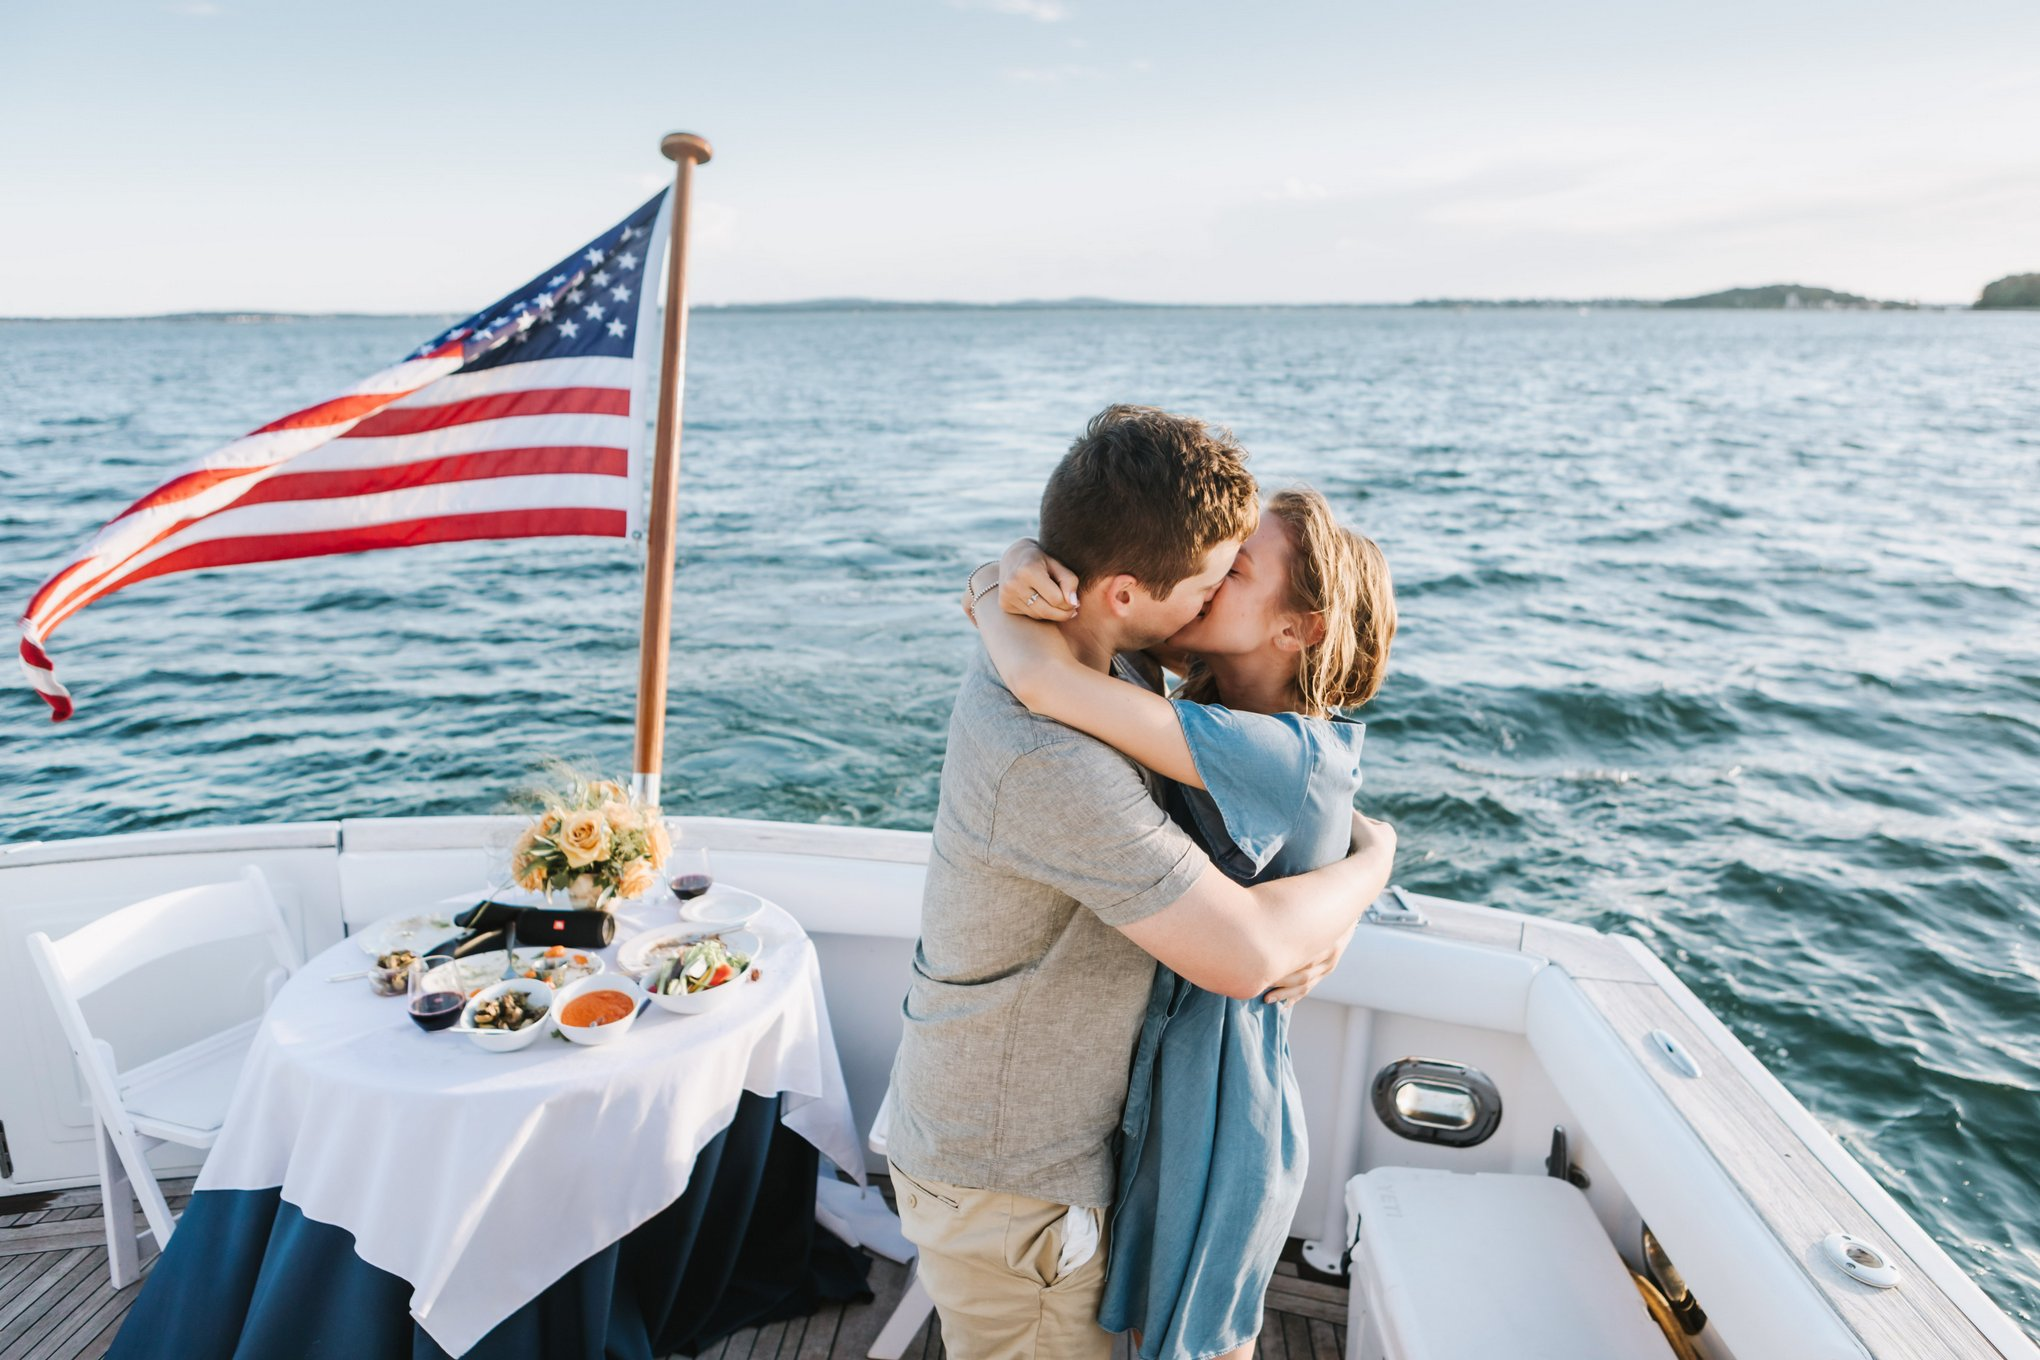 Yacht-Proposal-Boat-Boston-Harbor-Engagement-Beach-Lena-Mirisola-7.JPG